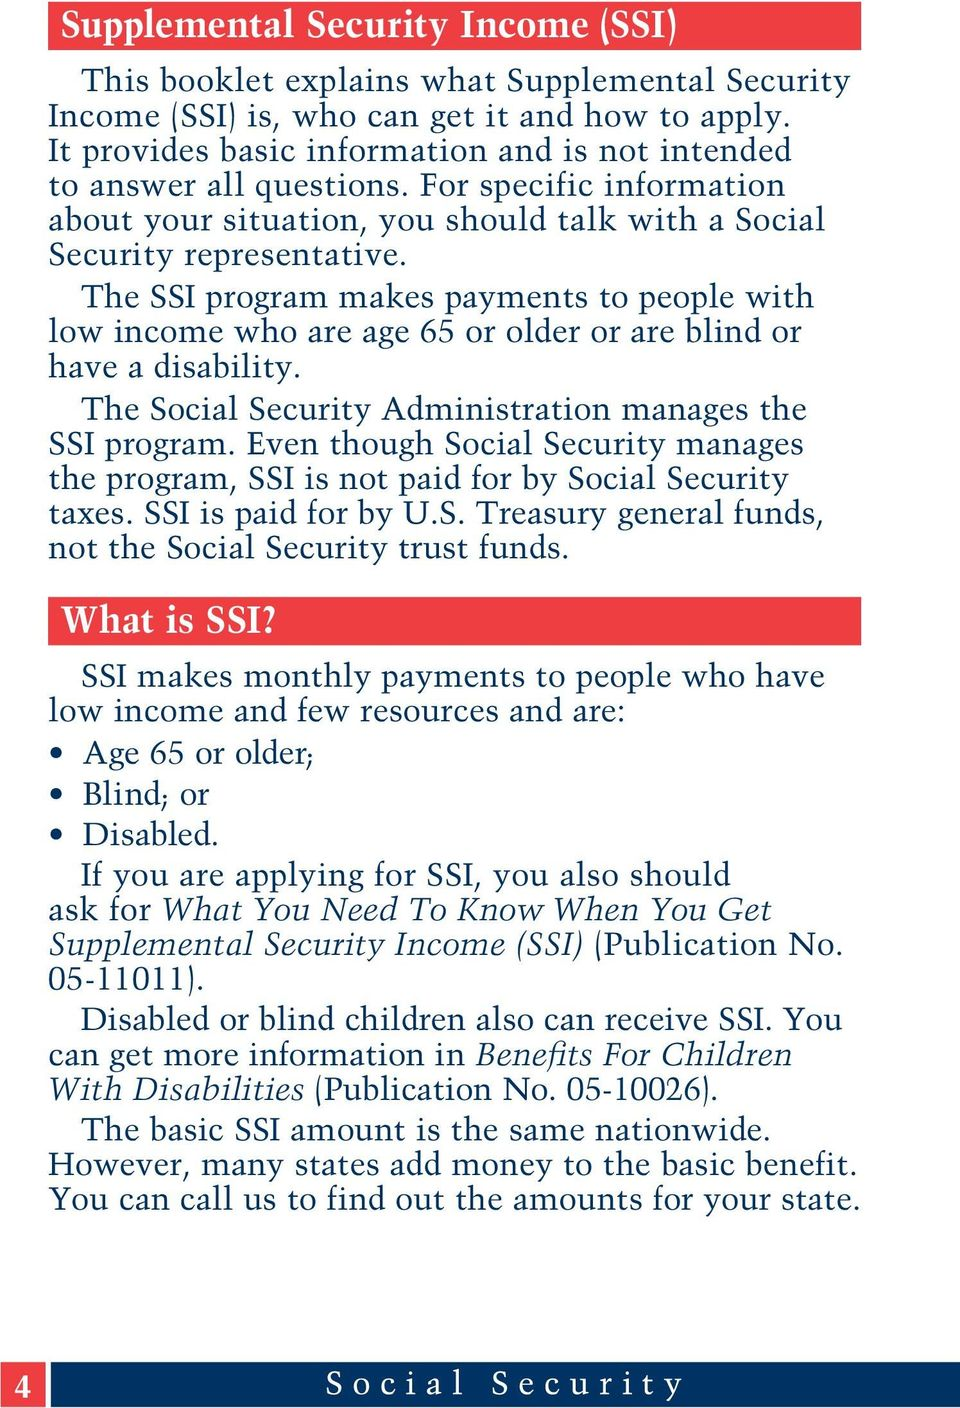 The SSI program makes payments to people with low income who are age 65 or older or are blind or have a disability. The Social Security Administration manages the SSI program.